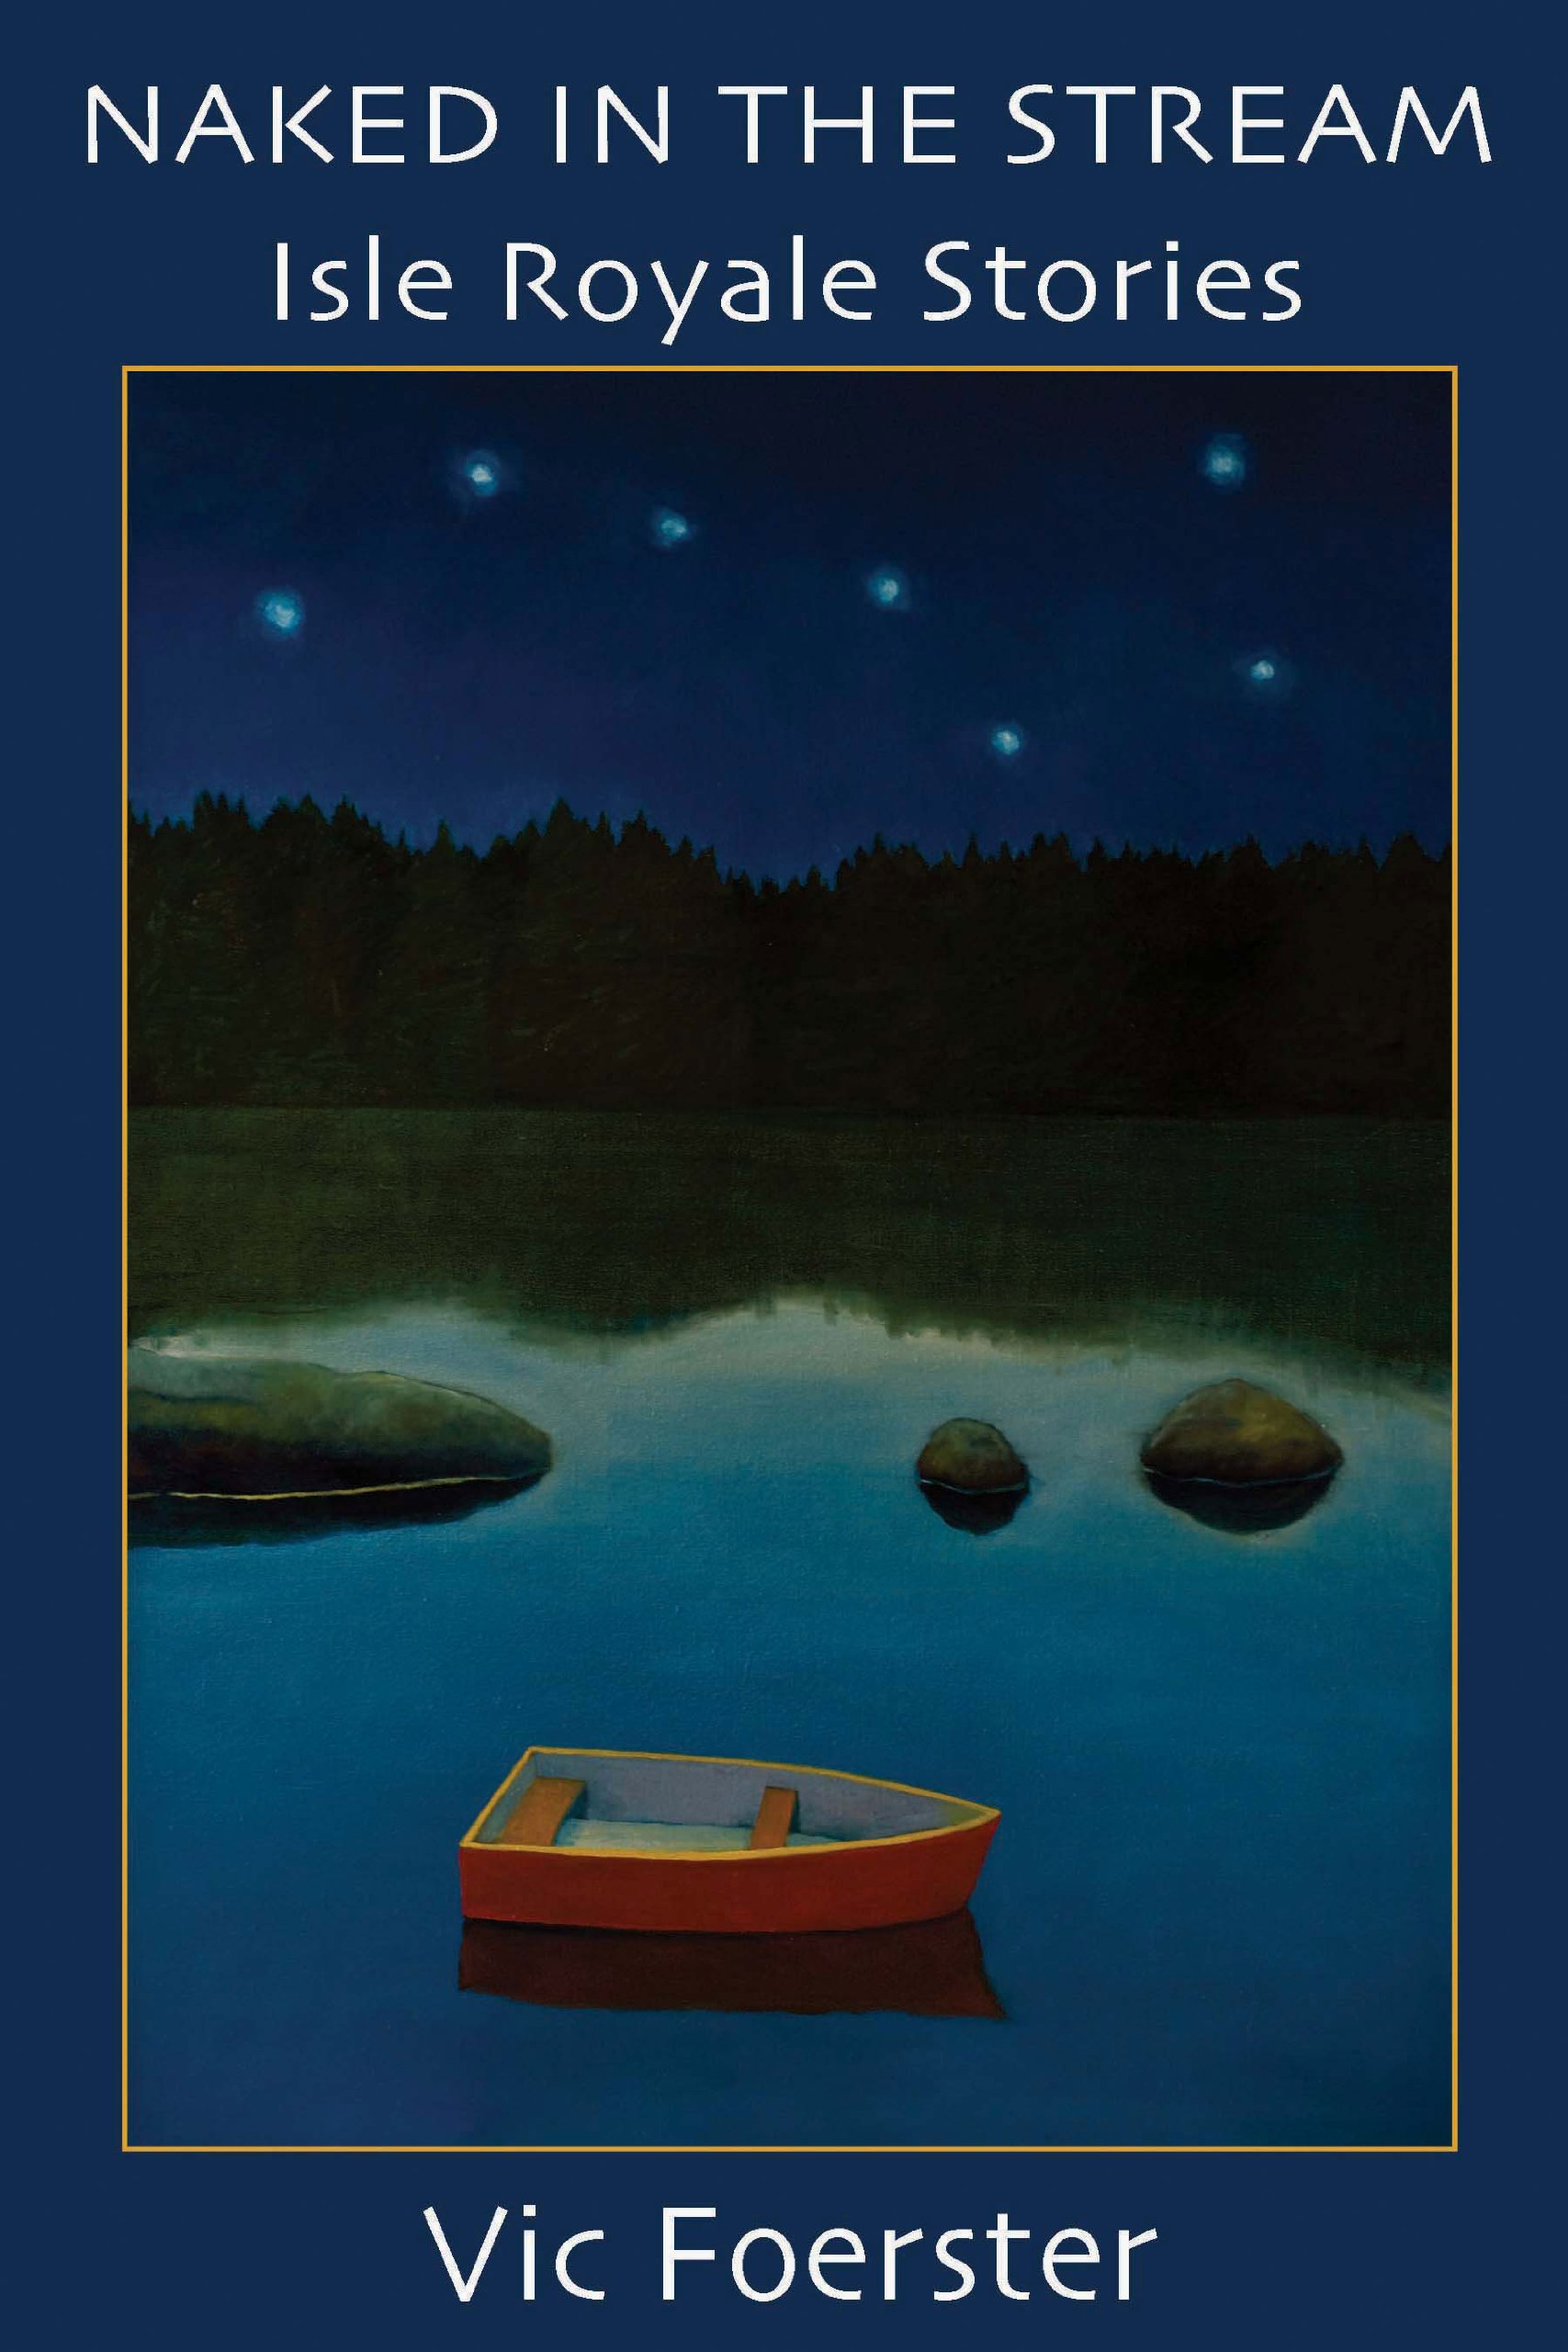 Naked in the Stream: Isle Royale Stories